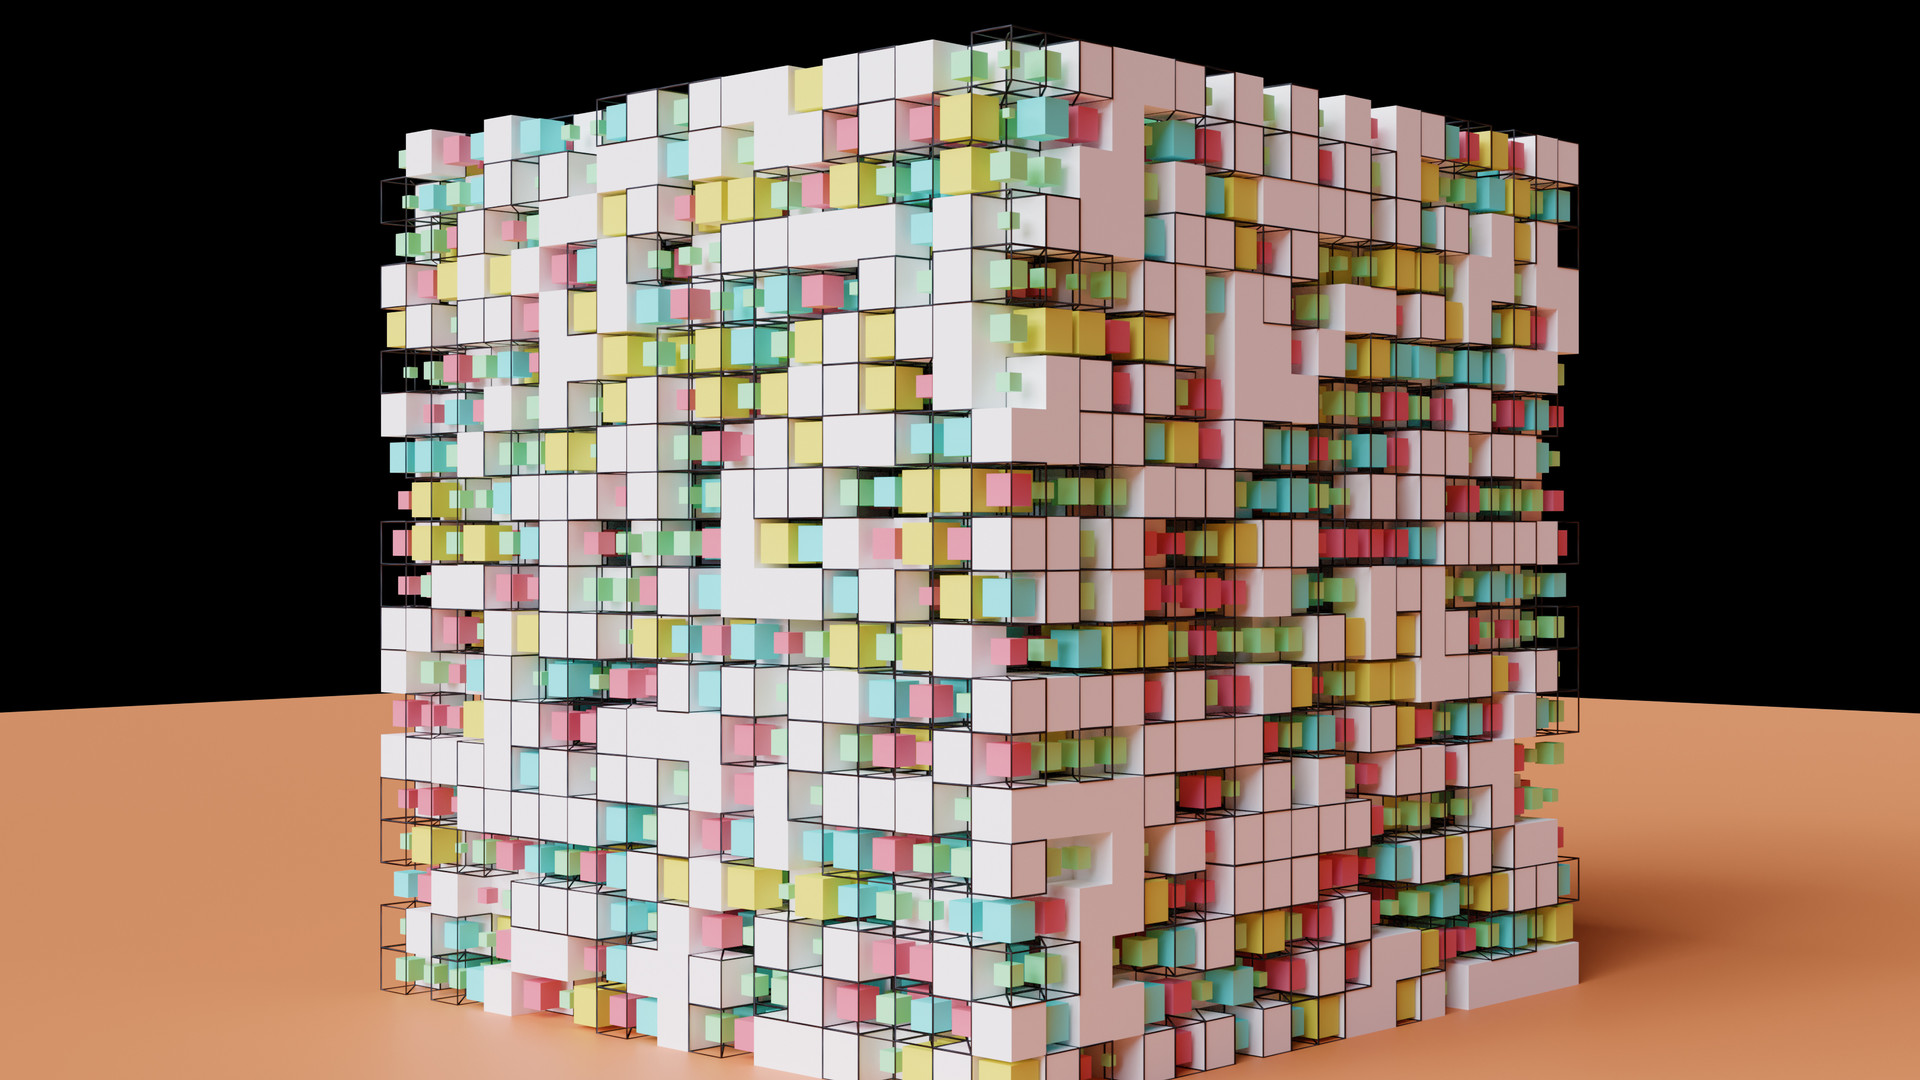 Wireframe & Scaled Cubes 2